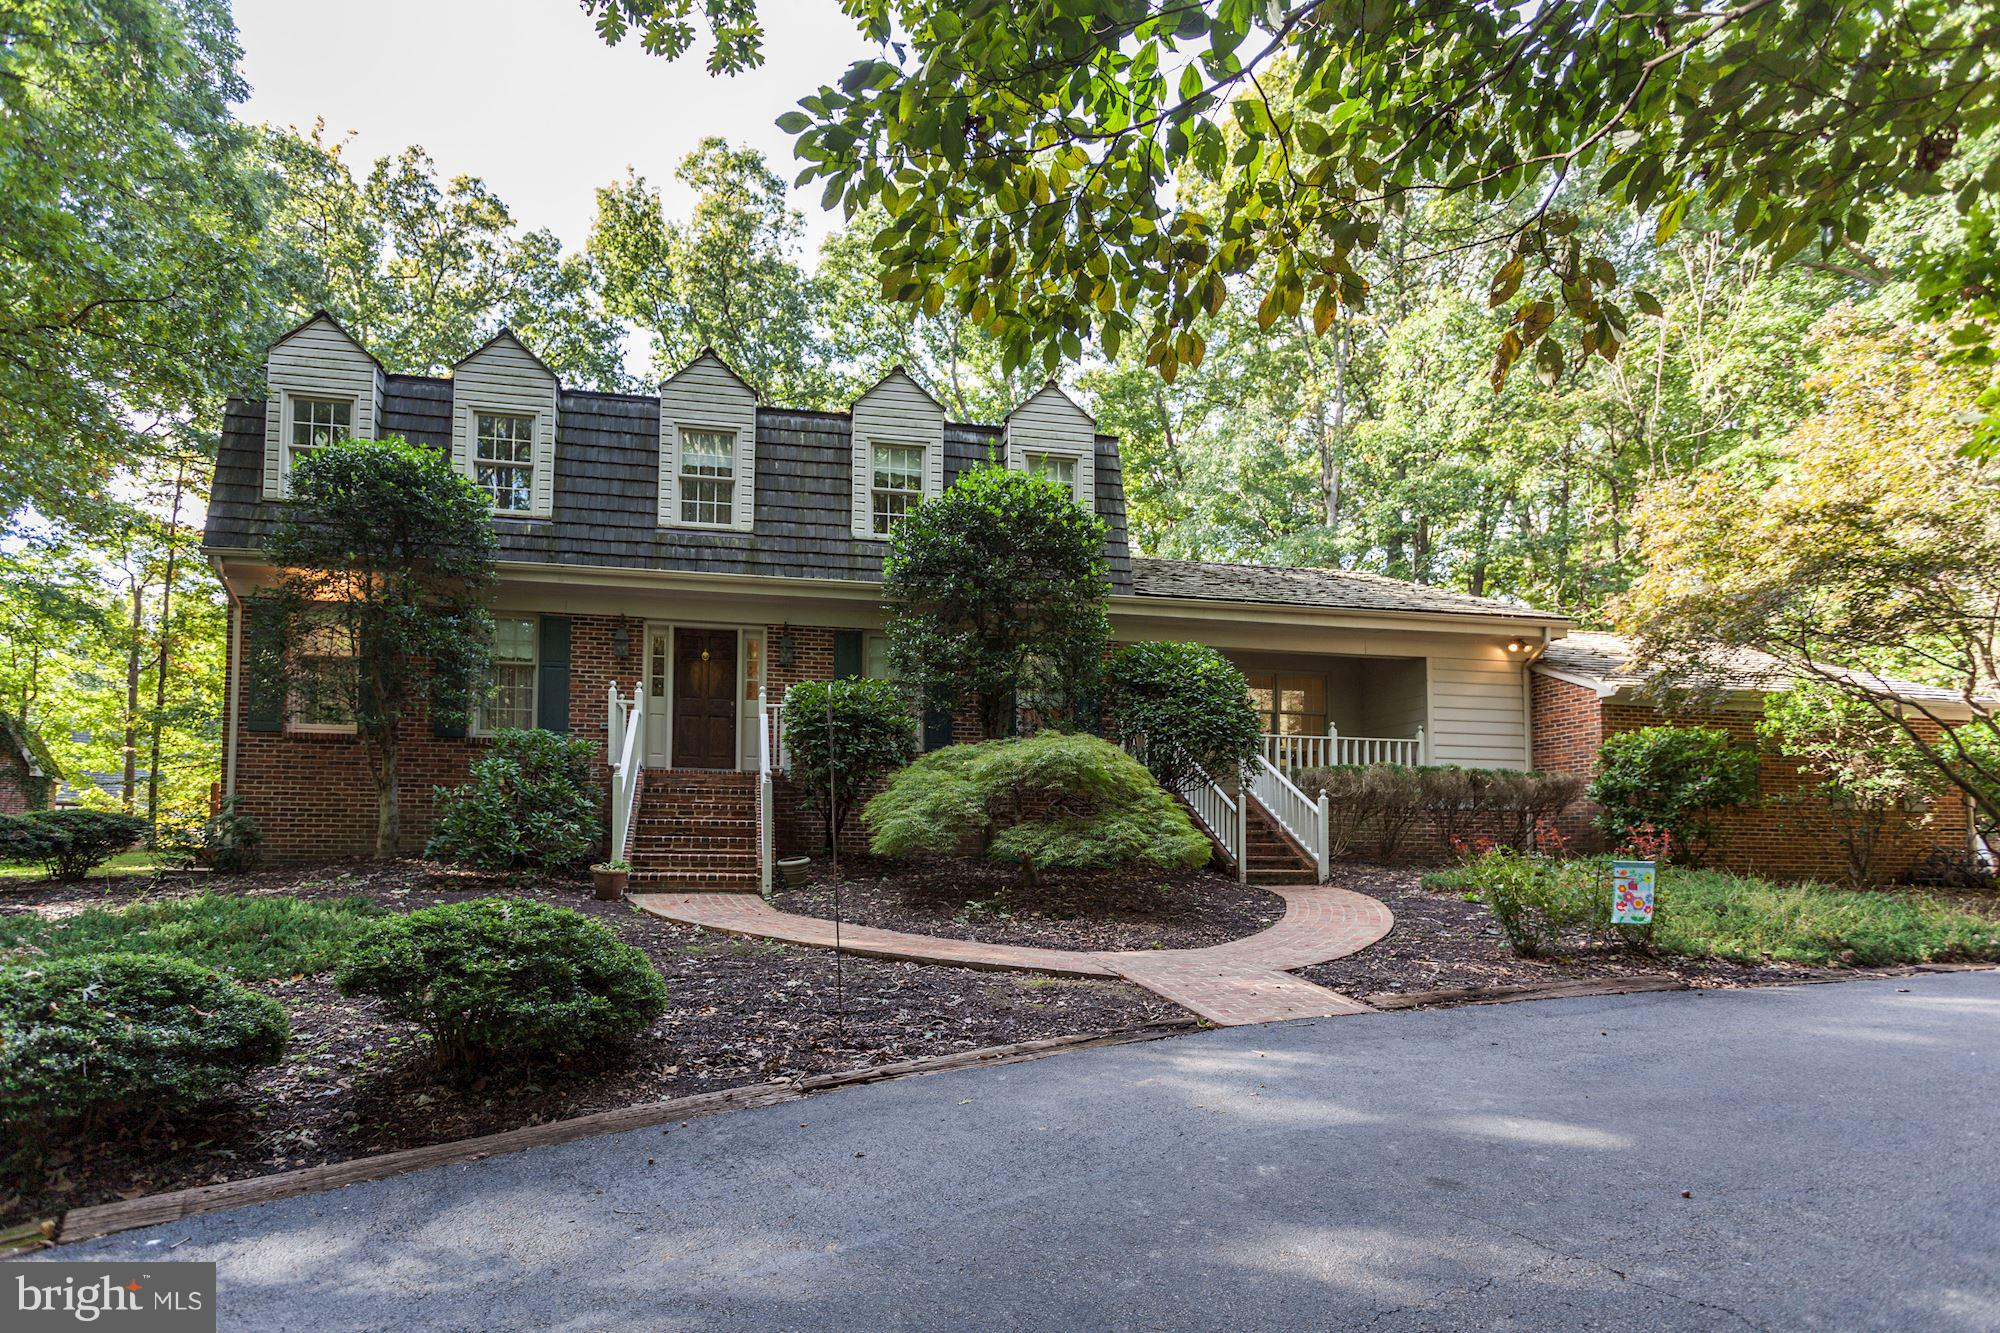 CHARMING COLONIAL ON BEAUTIFUL CORNER LOT WITH TONS OF PRIVACY, GORGEOUS HARDWOODS, 2 WOOD BURNING F